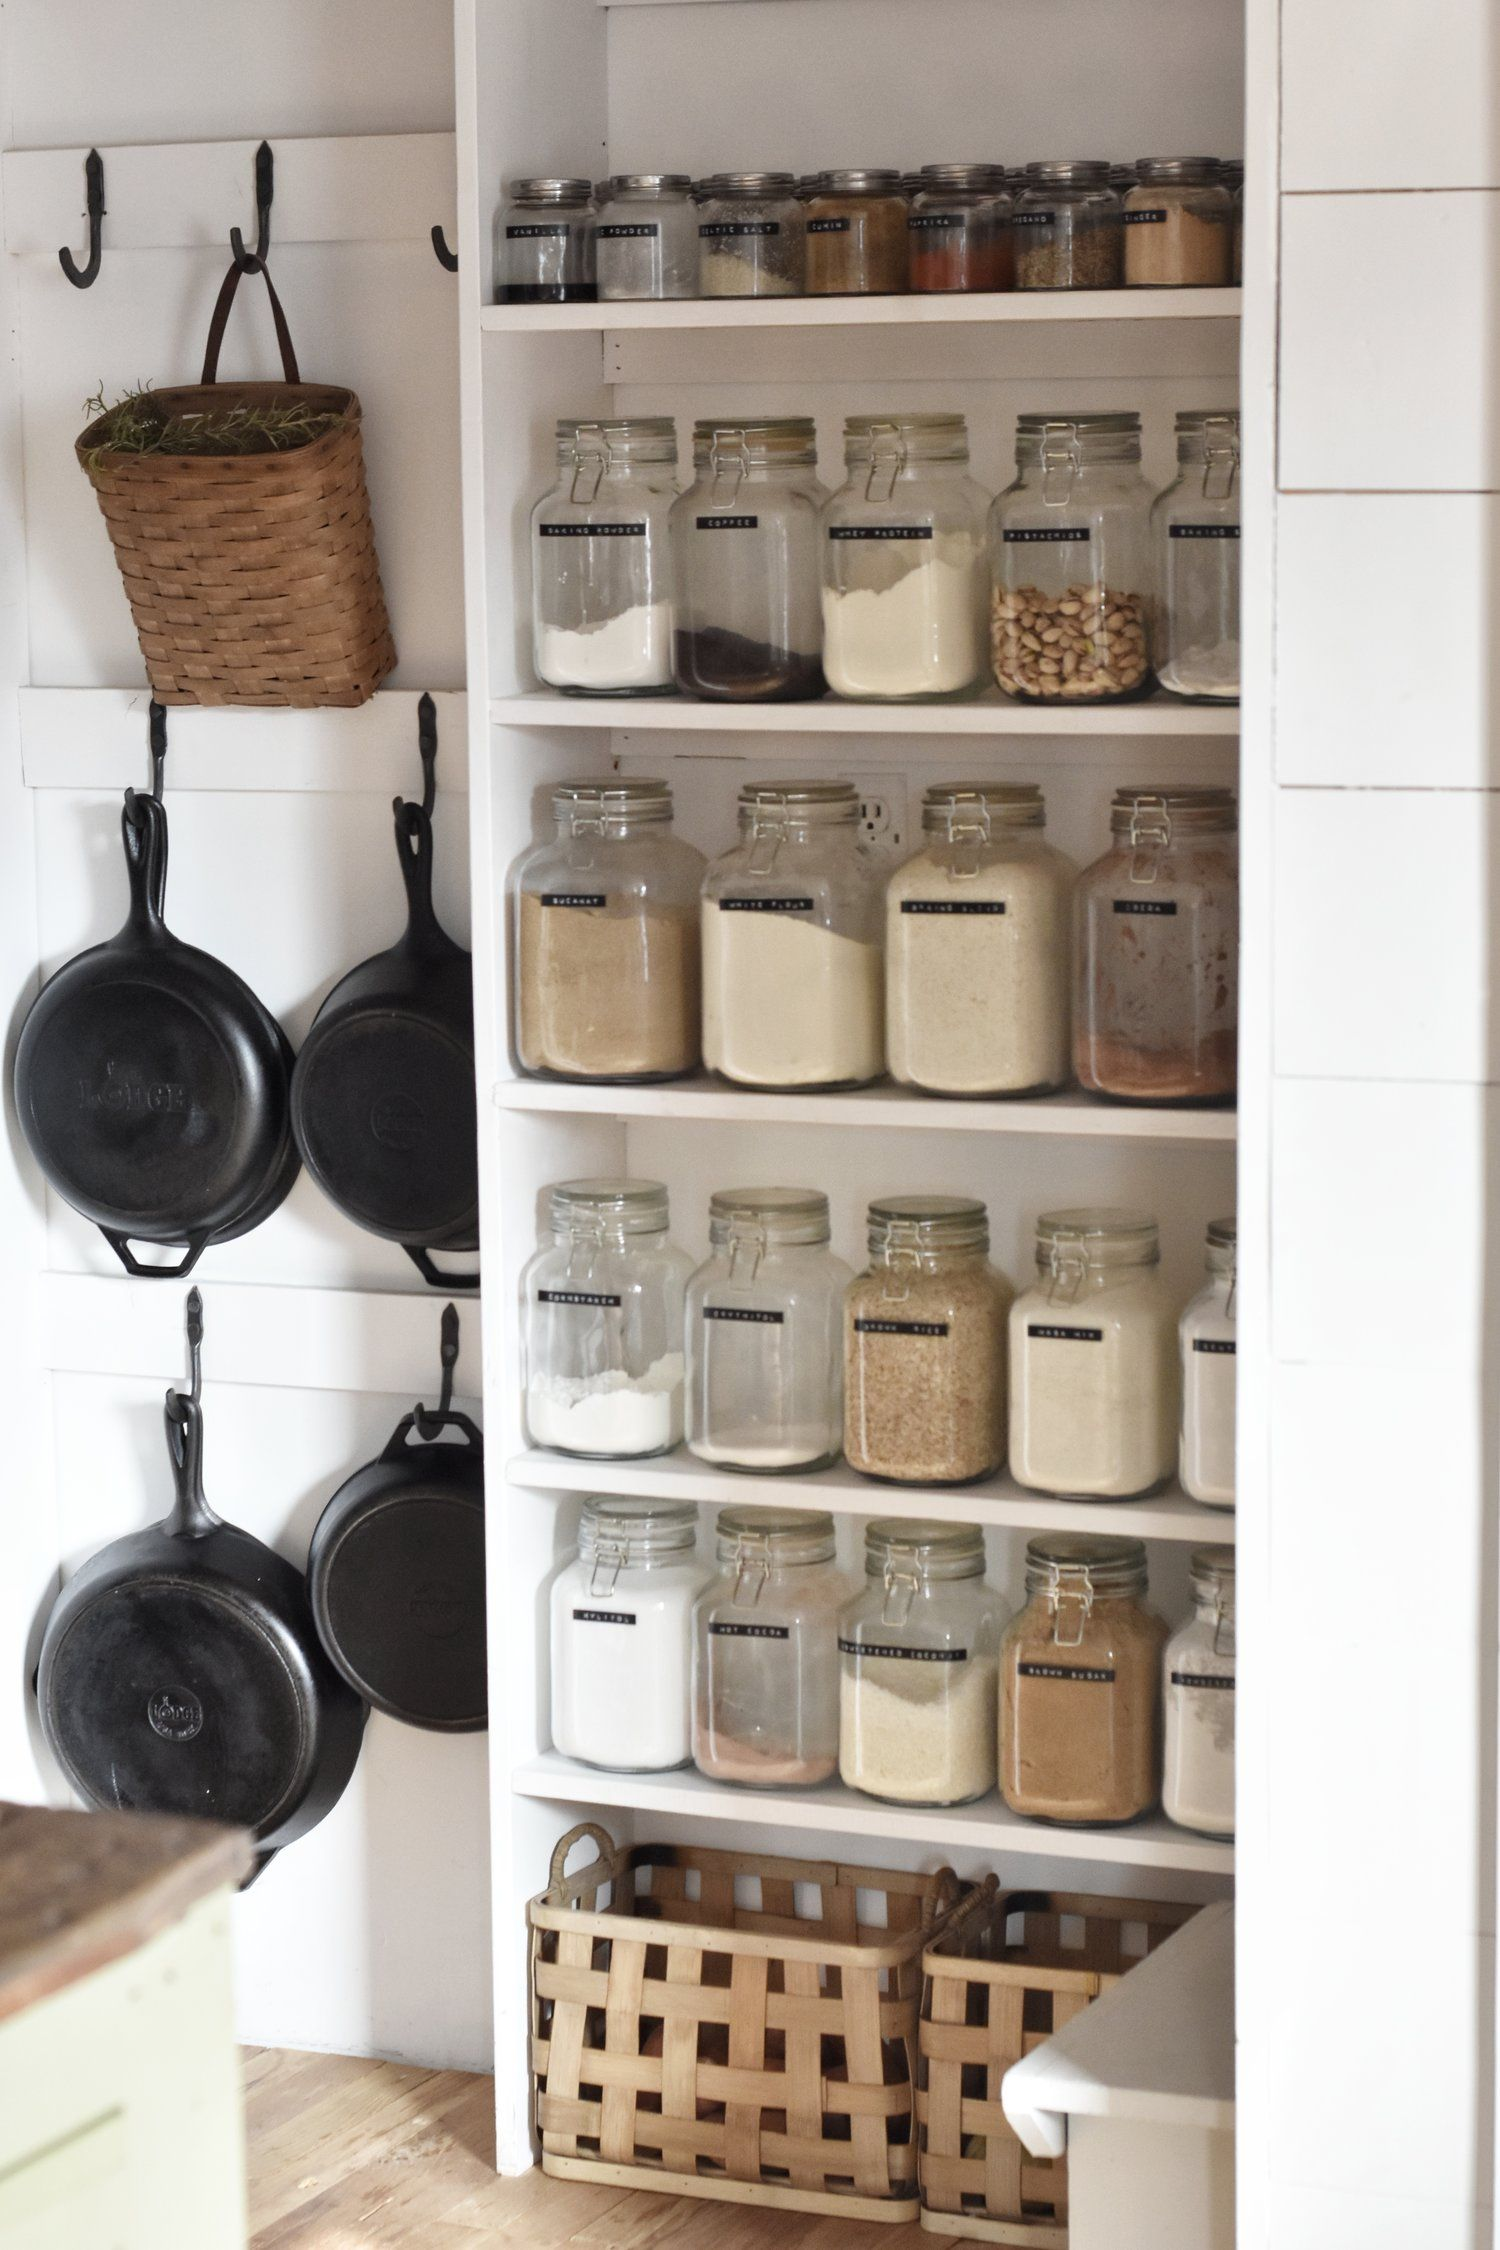 Pantry Essentials for a Well Stocked Kitchen